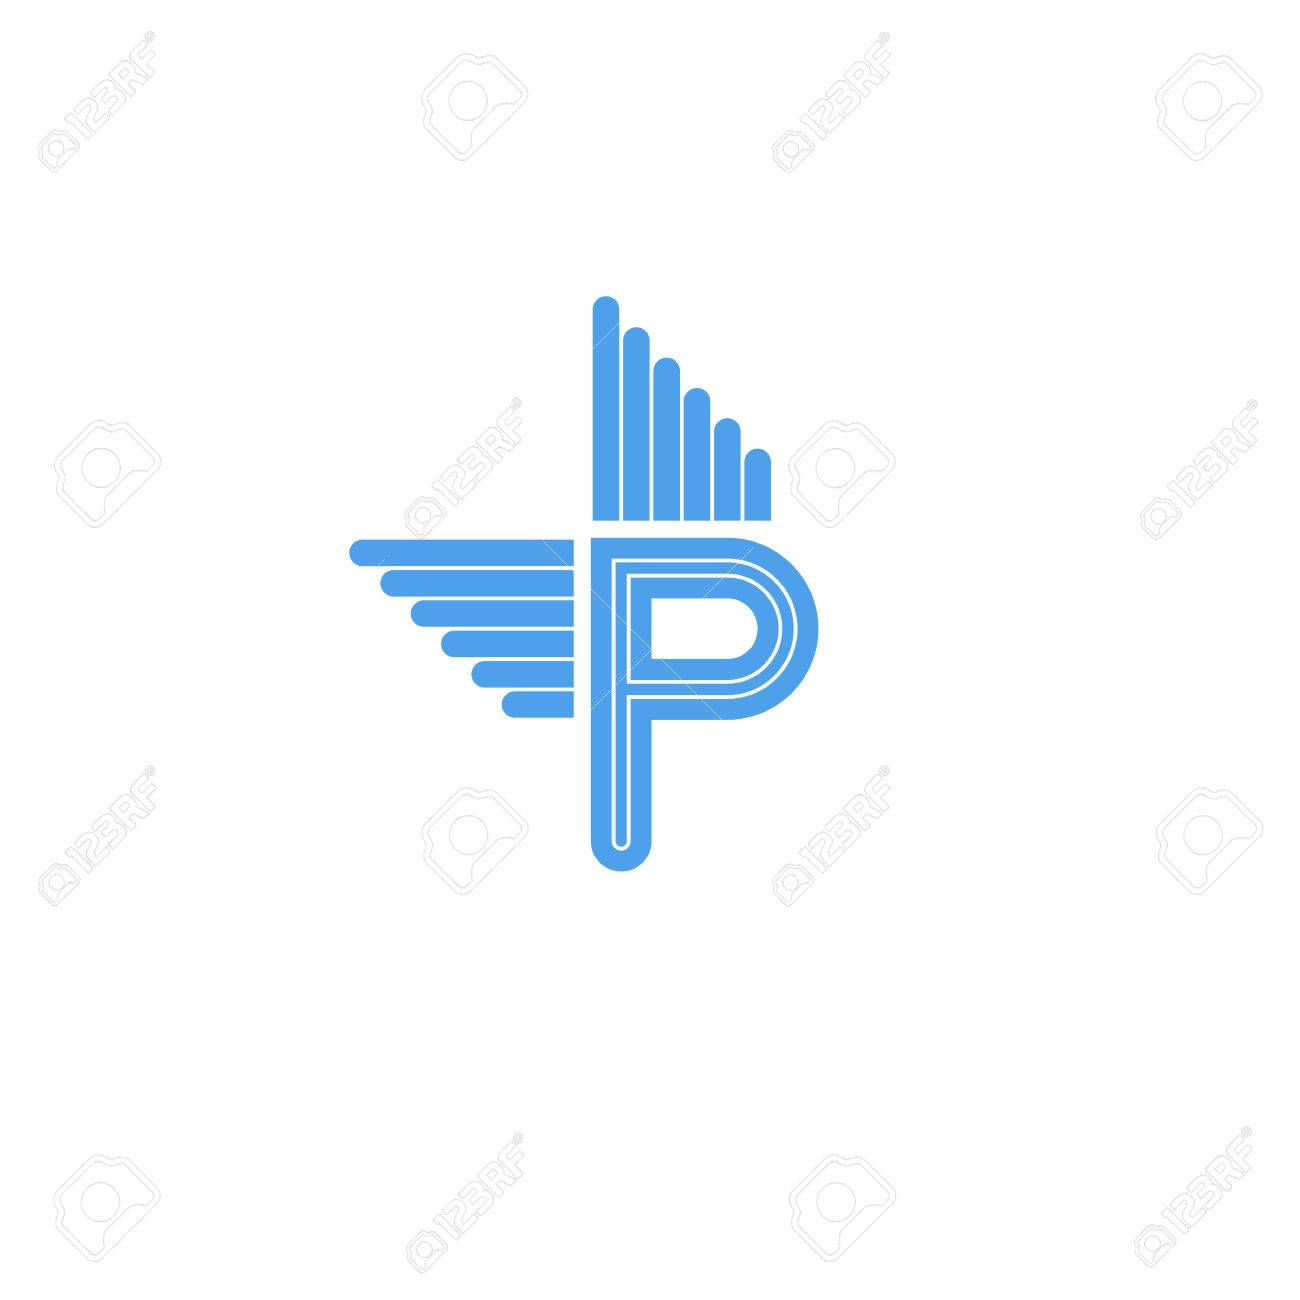 Free graphics for business cards choice image free business cards letter p logo with blue wings flying concept symbol for business letter p logo with blue magicingreecefo Images